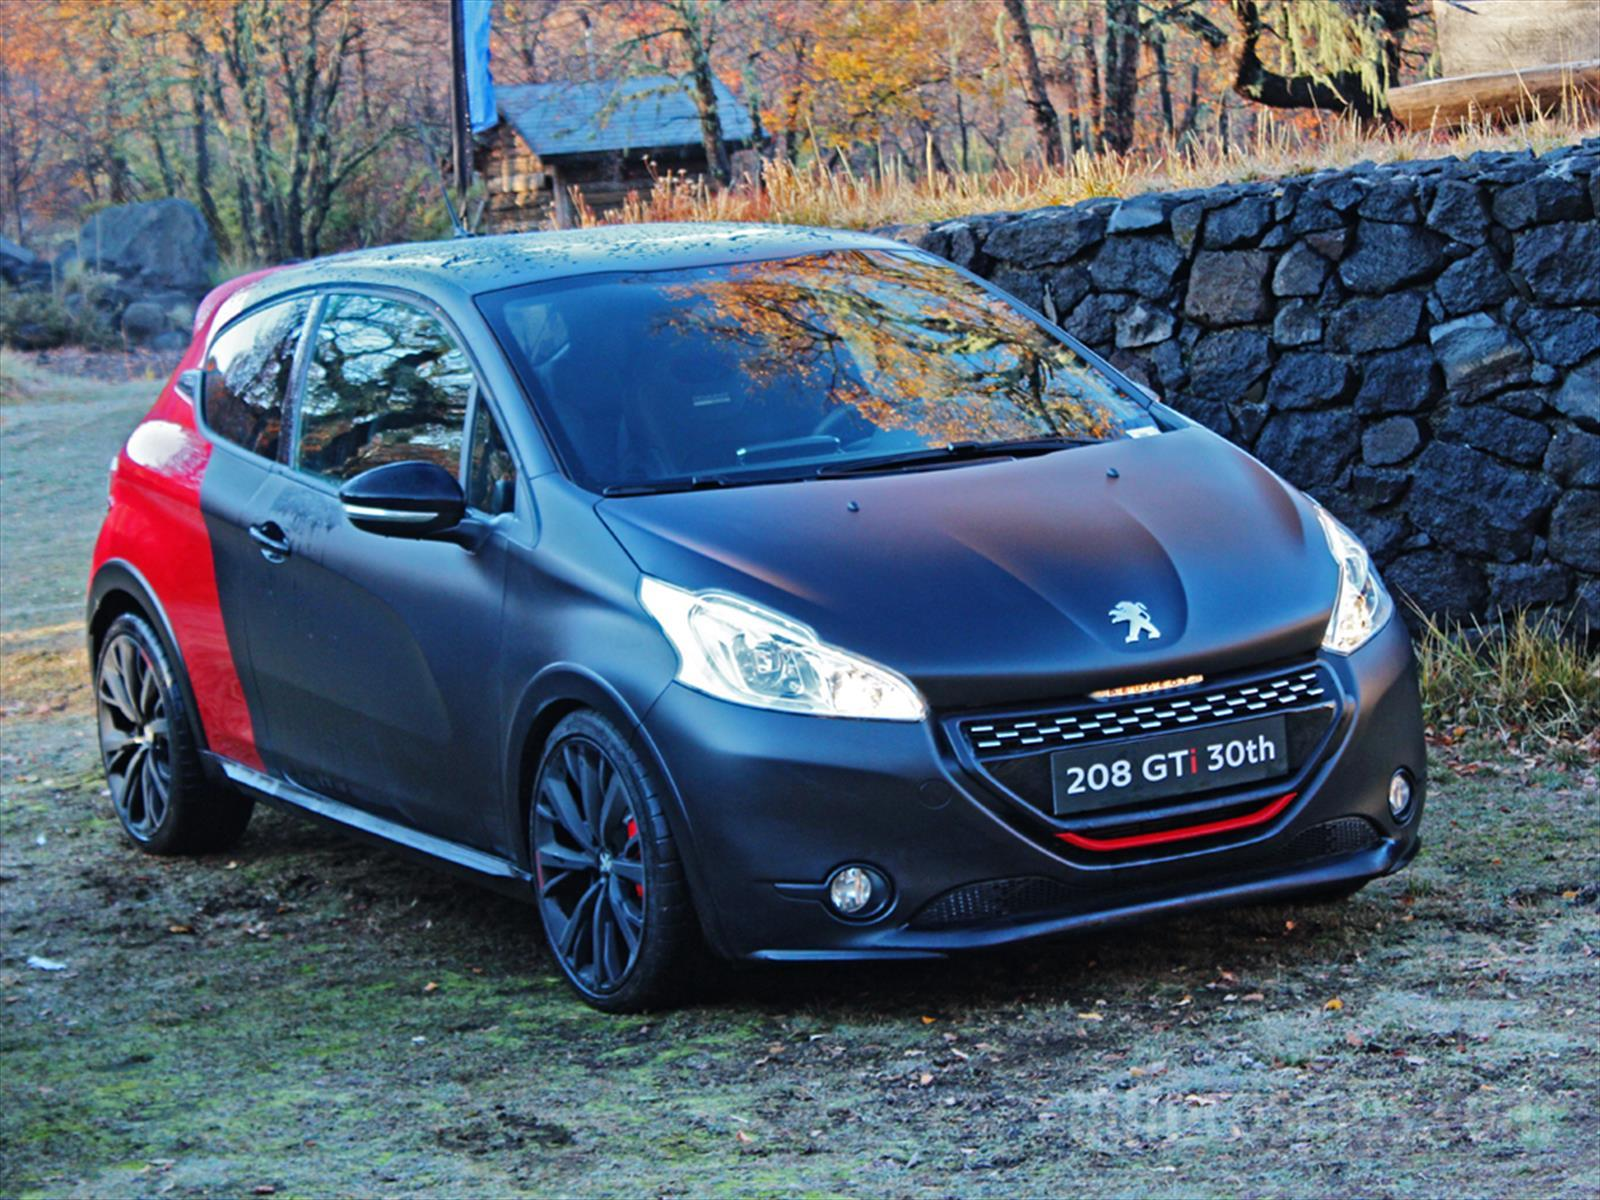 peugeot 208 gti 30th 9 unidades llegan a chile dinamita pura. Black Bedroom Furniture Sets. Home Design Ideas